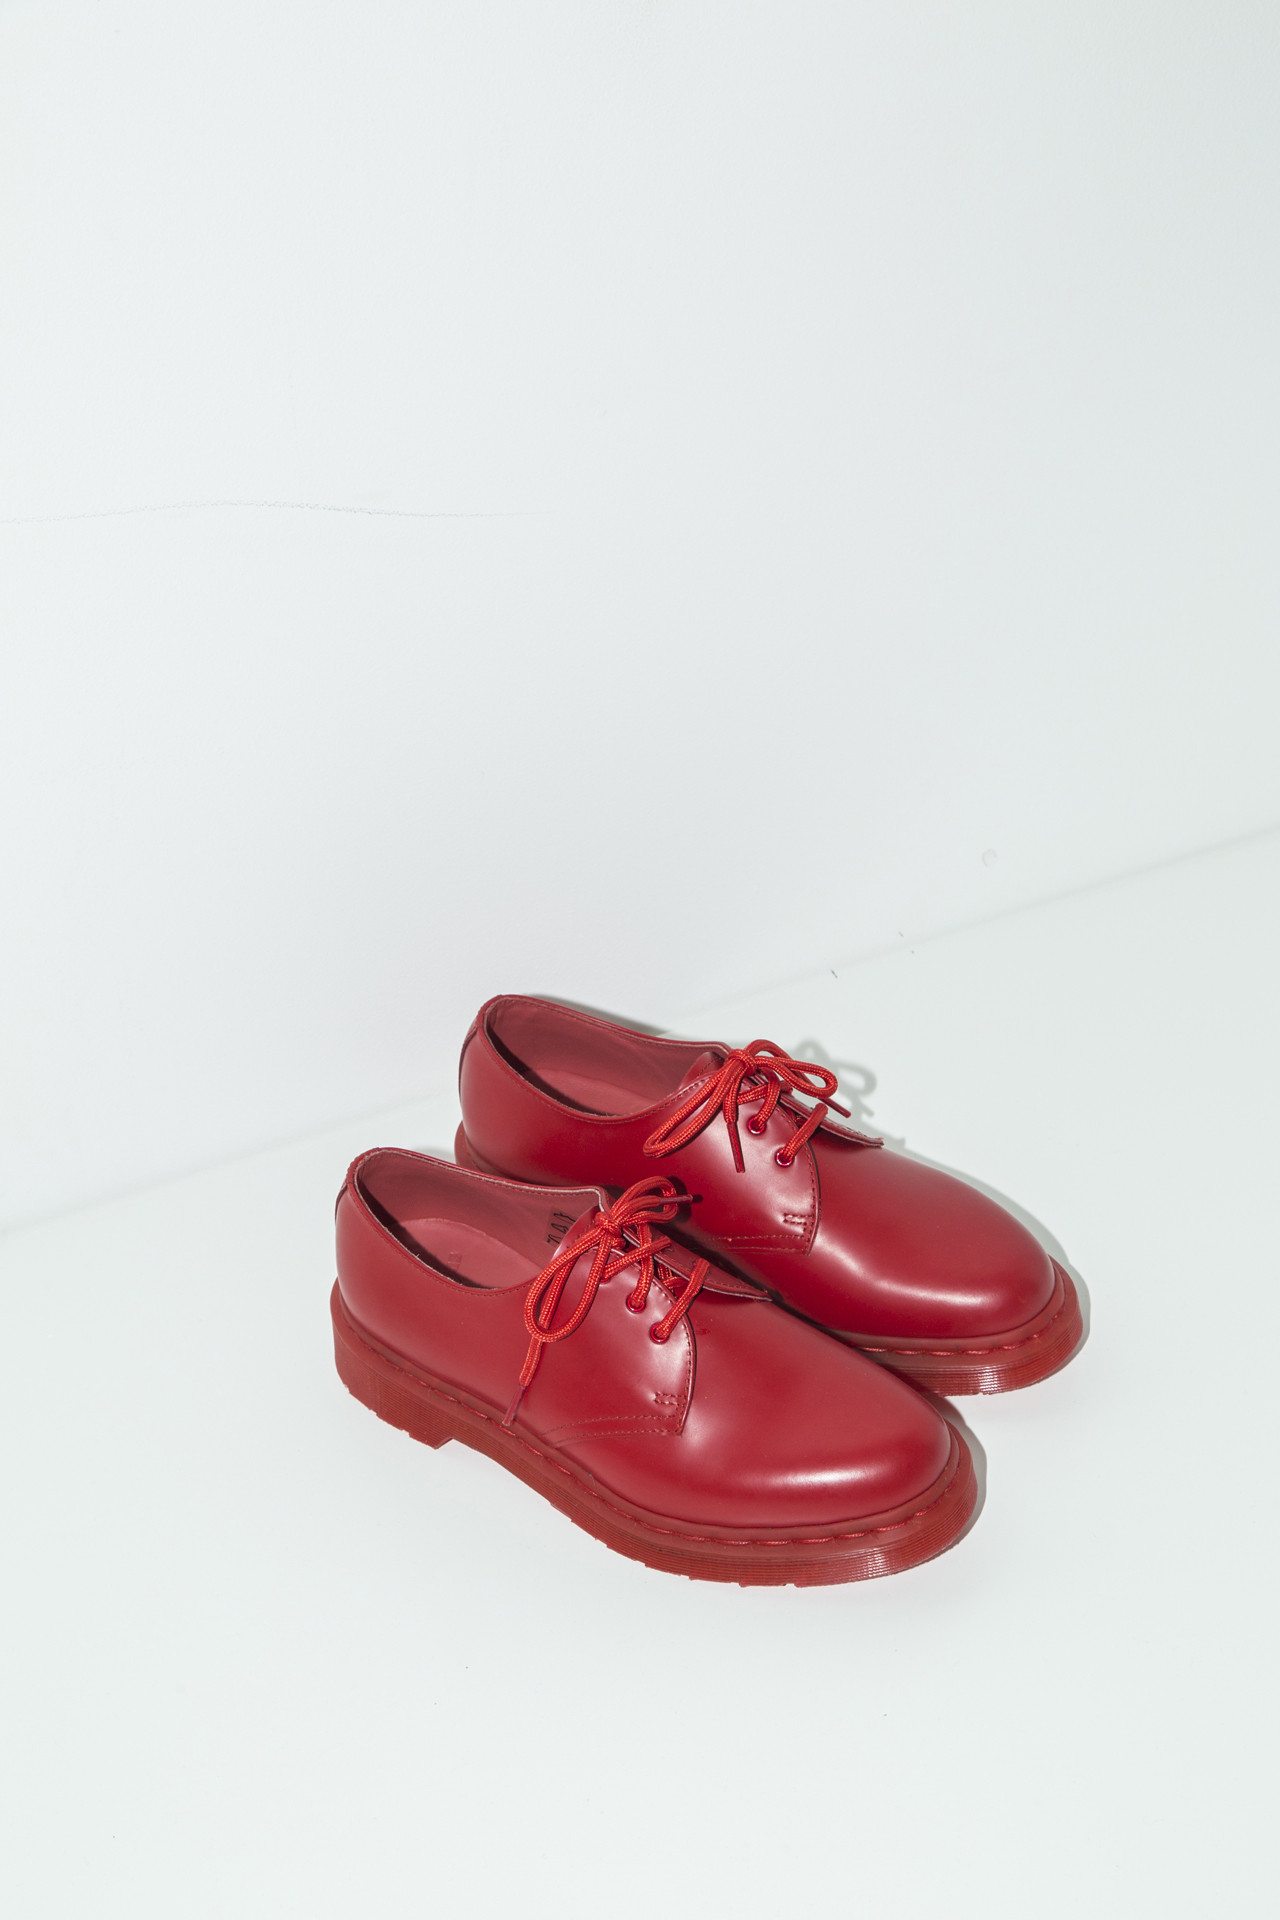 Dr. Martens 1461 Leather Oxford Shoes In Red | Lyst